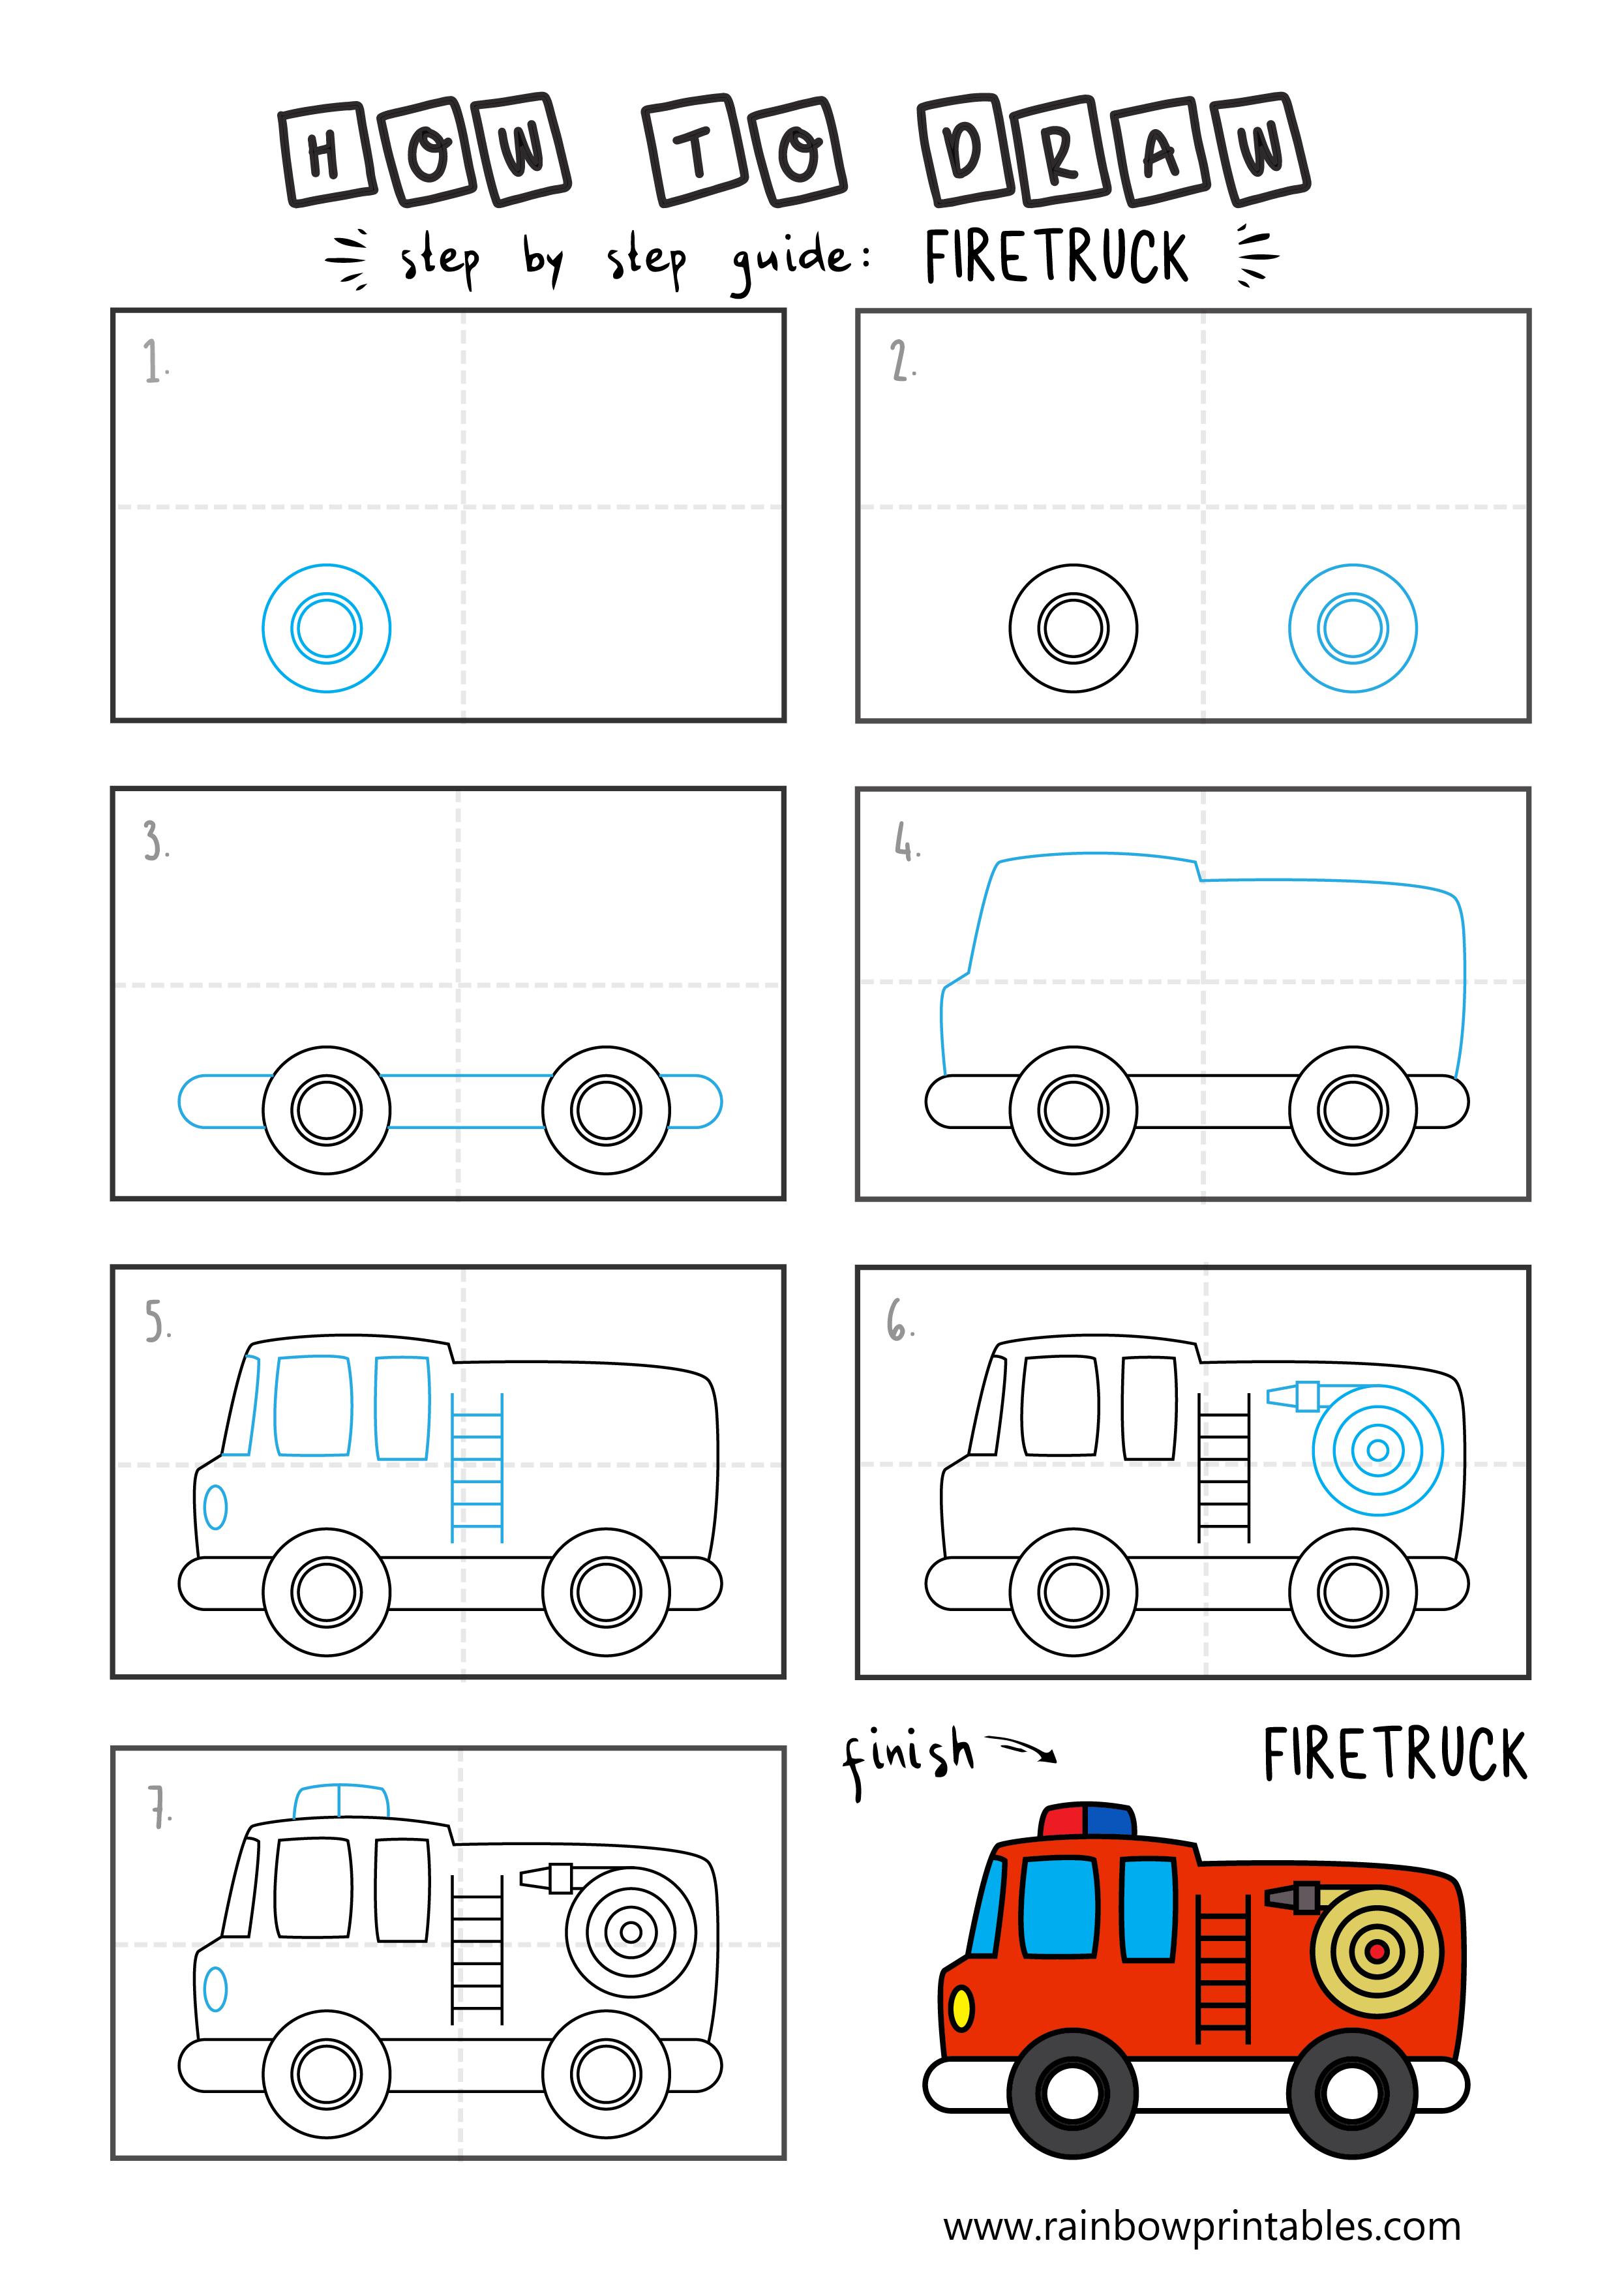 How To Draw a Fire TRUCKS Easy Step By Step For Kids Illustration Art Ideas